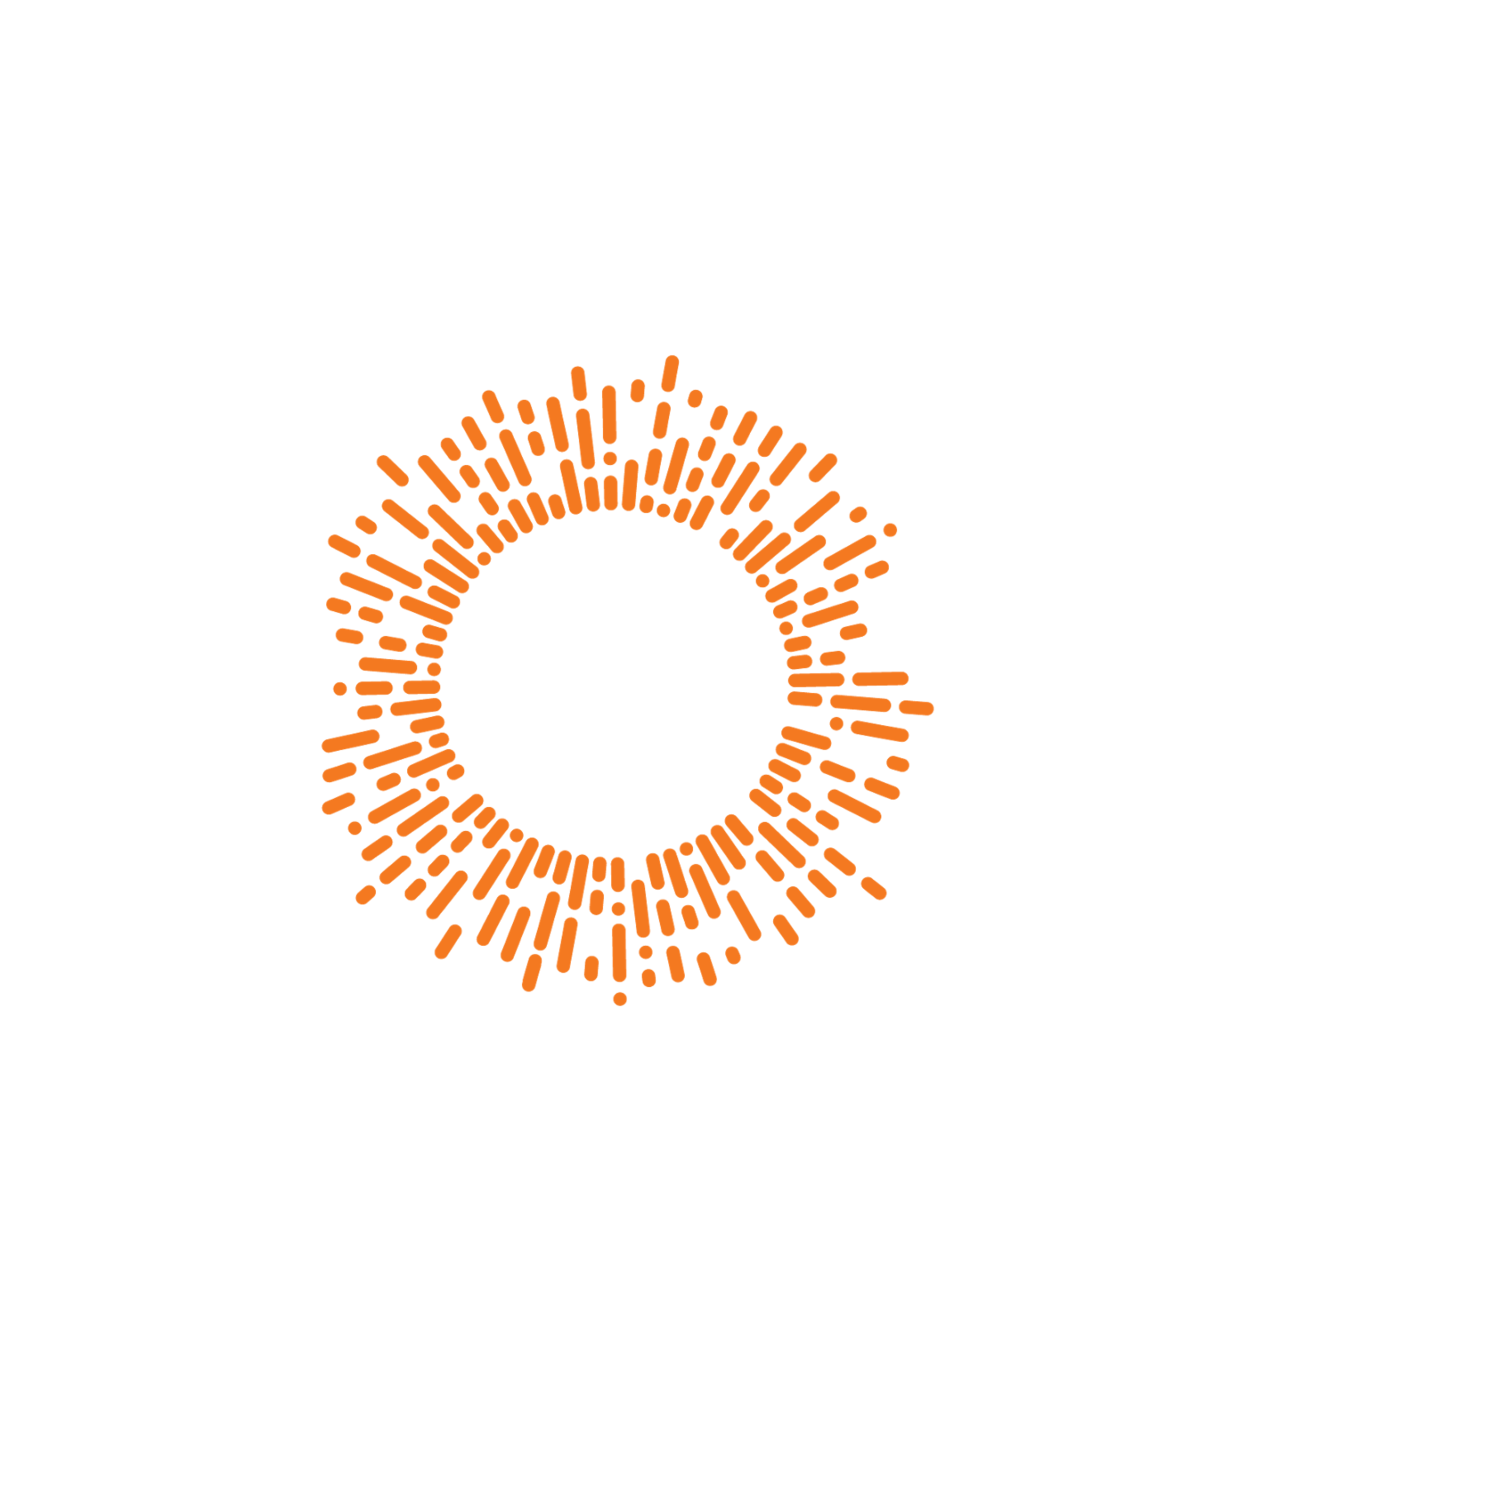 POSH SUPPER CLUB